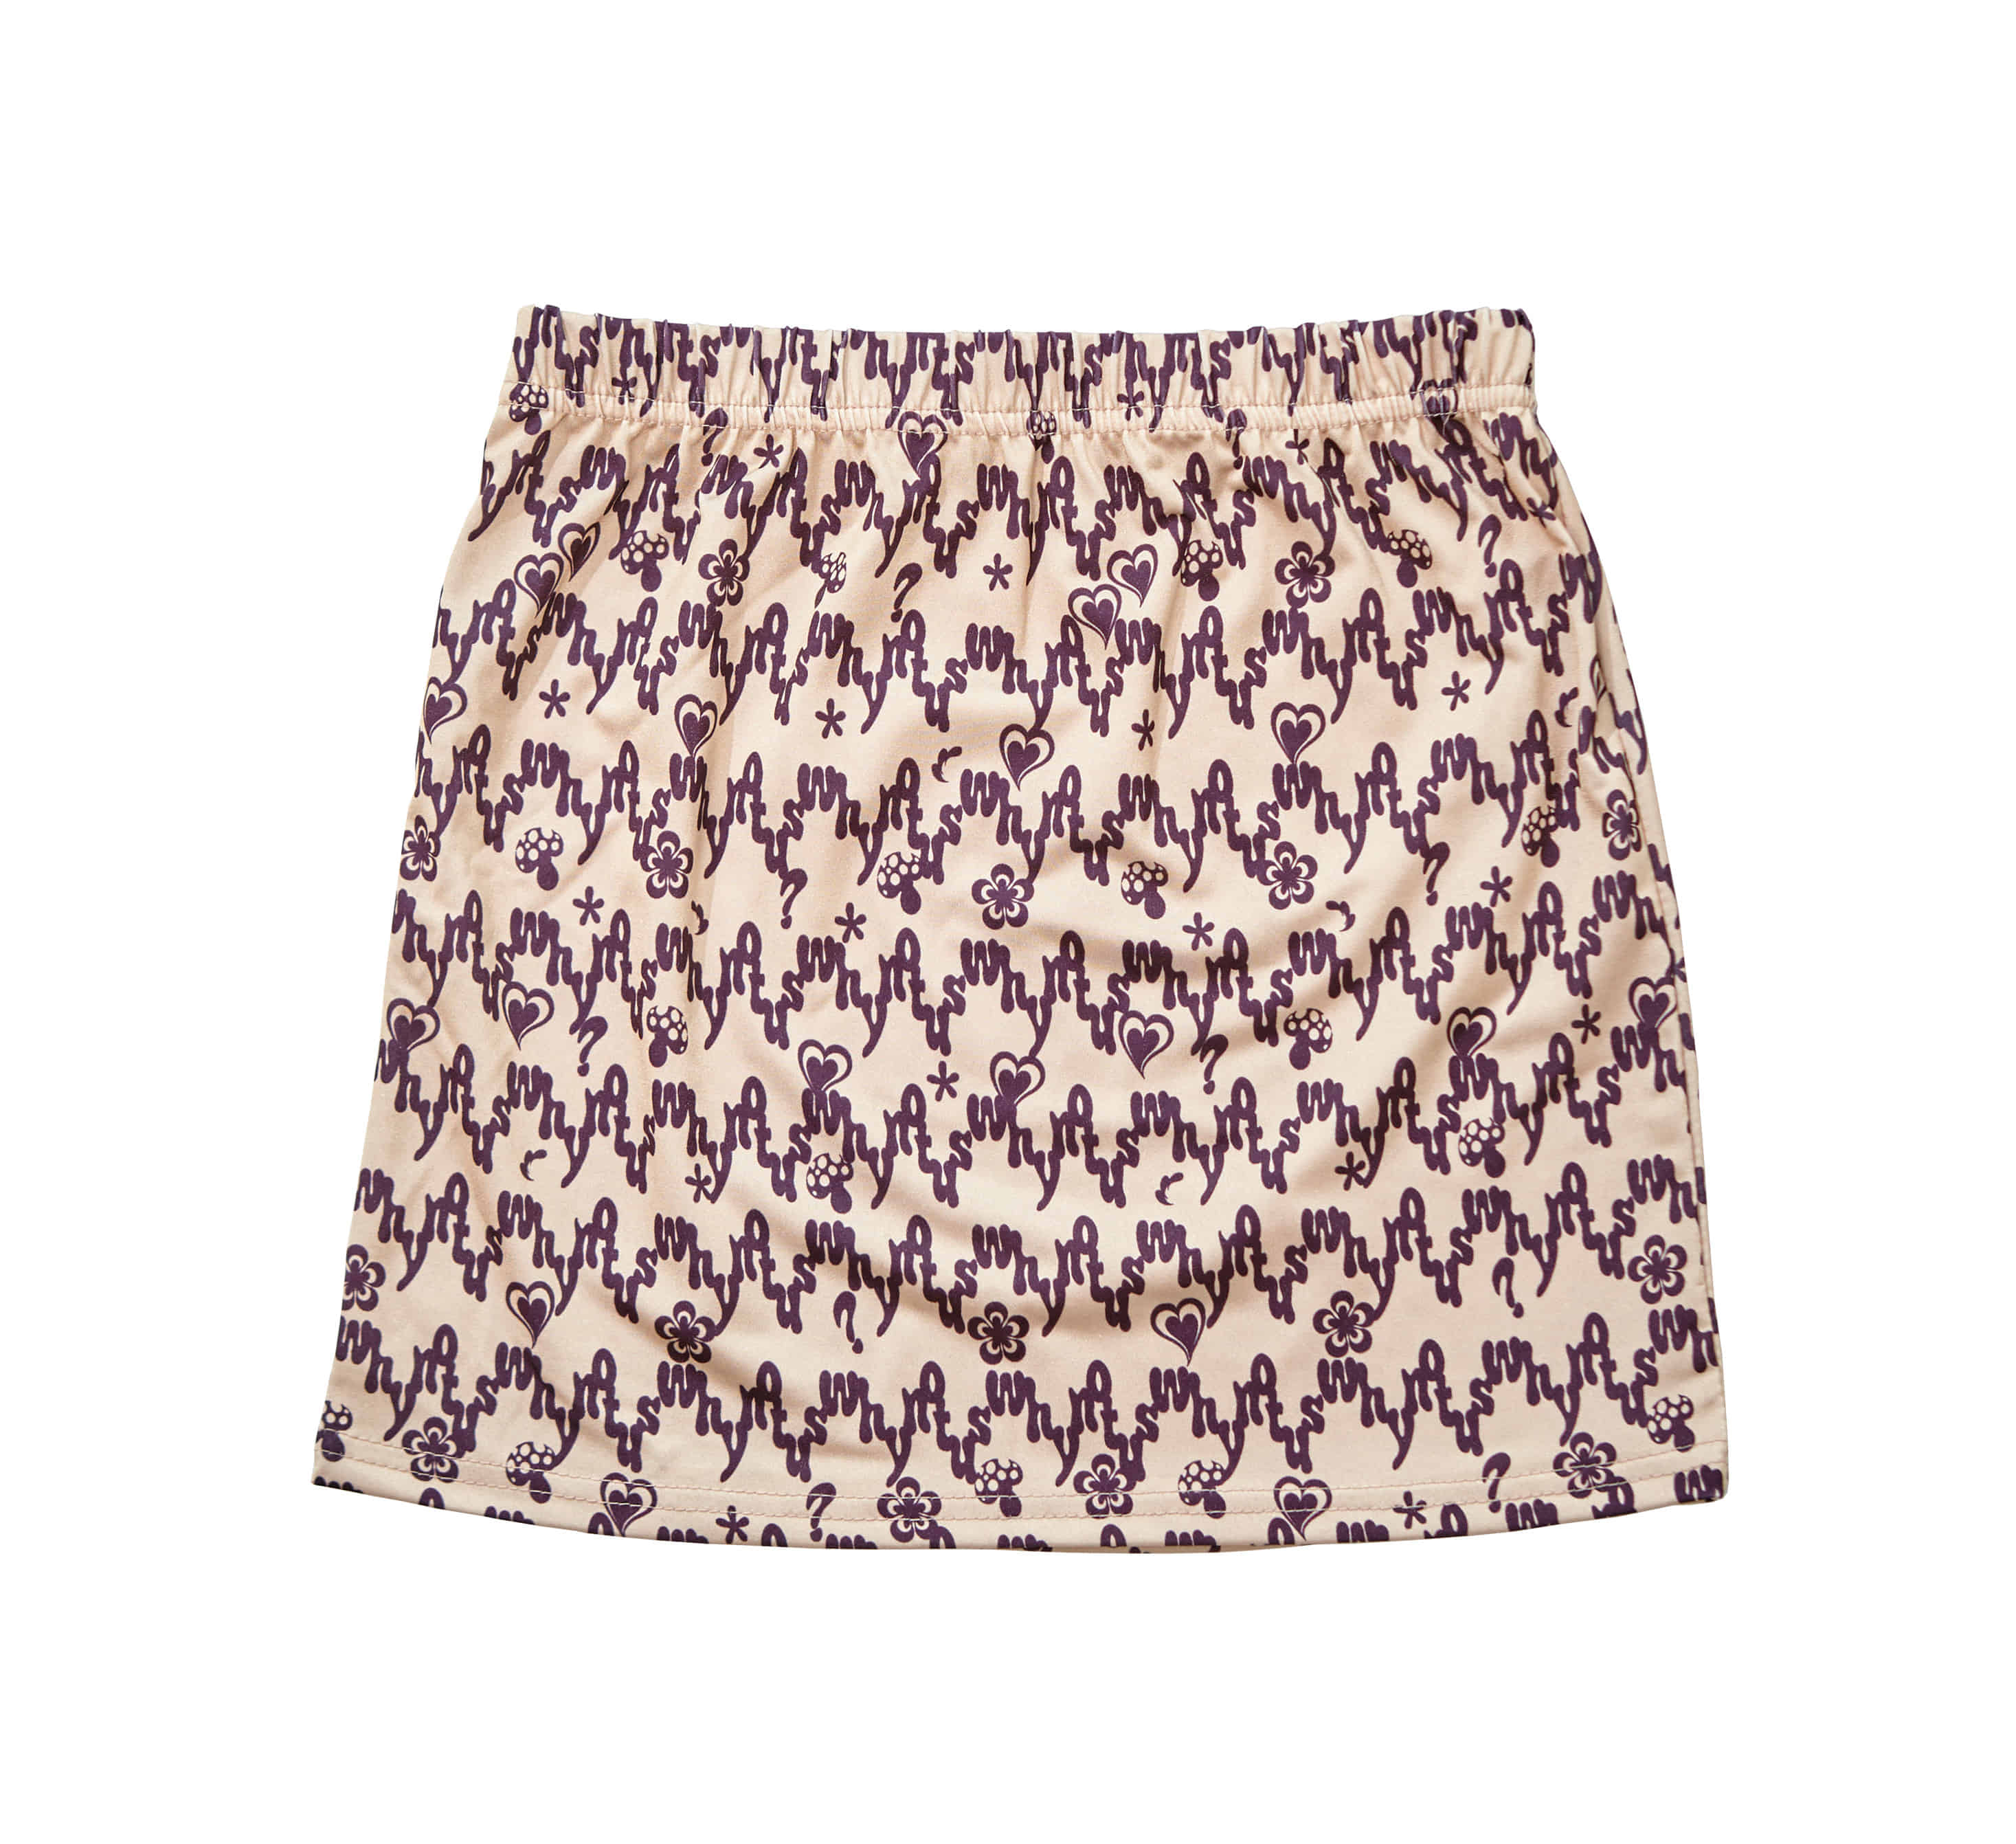 WNUS x RMHN skirt brown